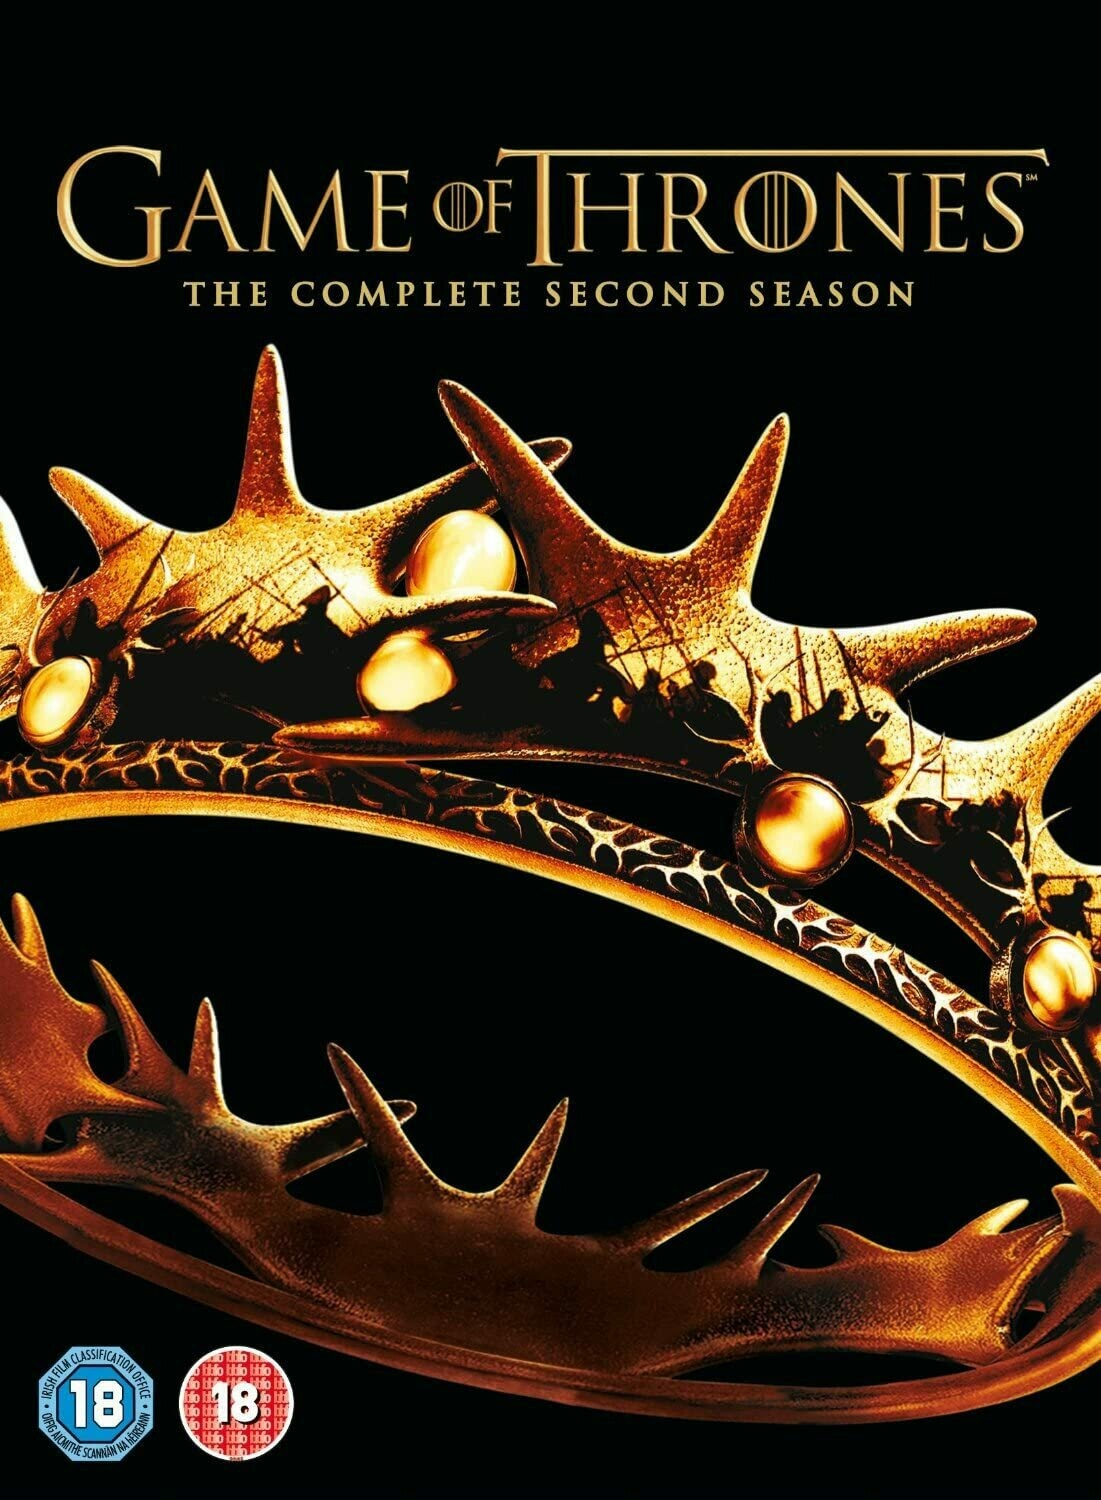 Game Of Thrones Season Two (7 day rental)